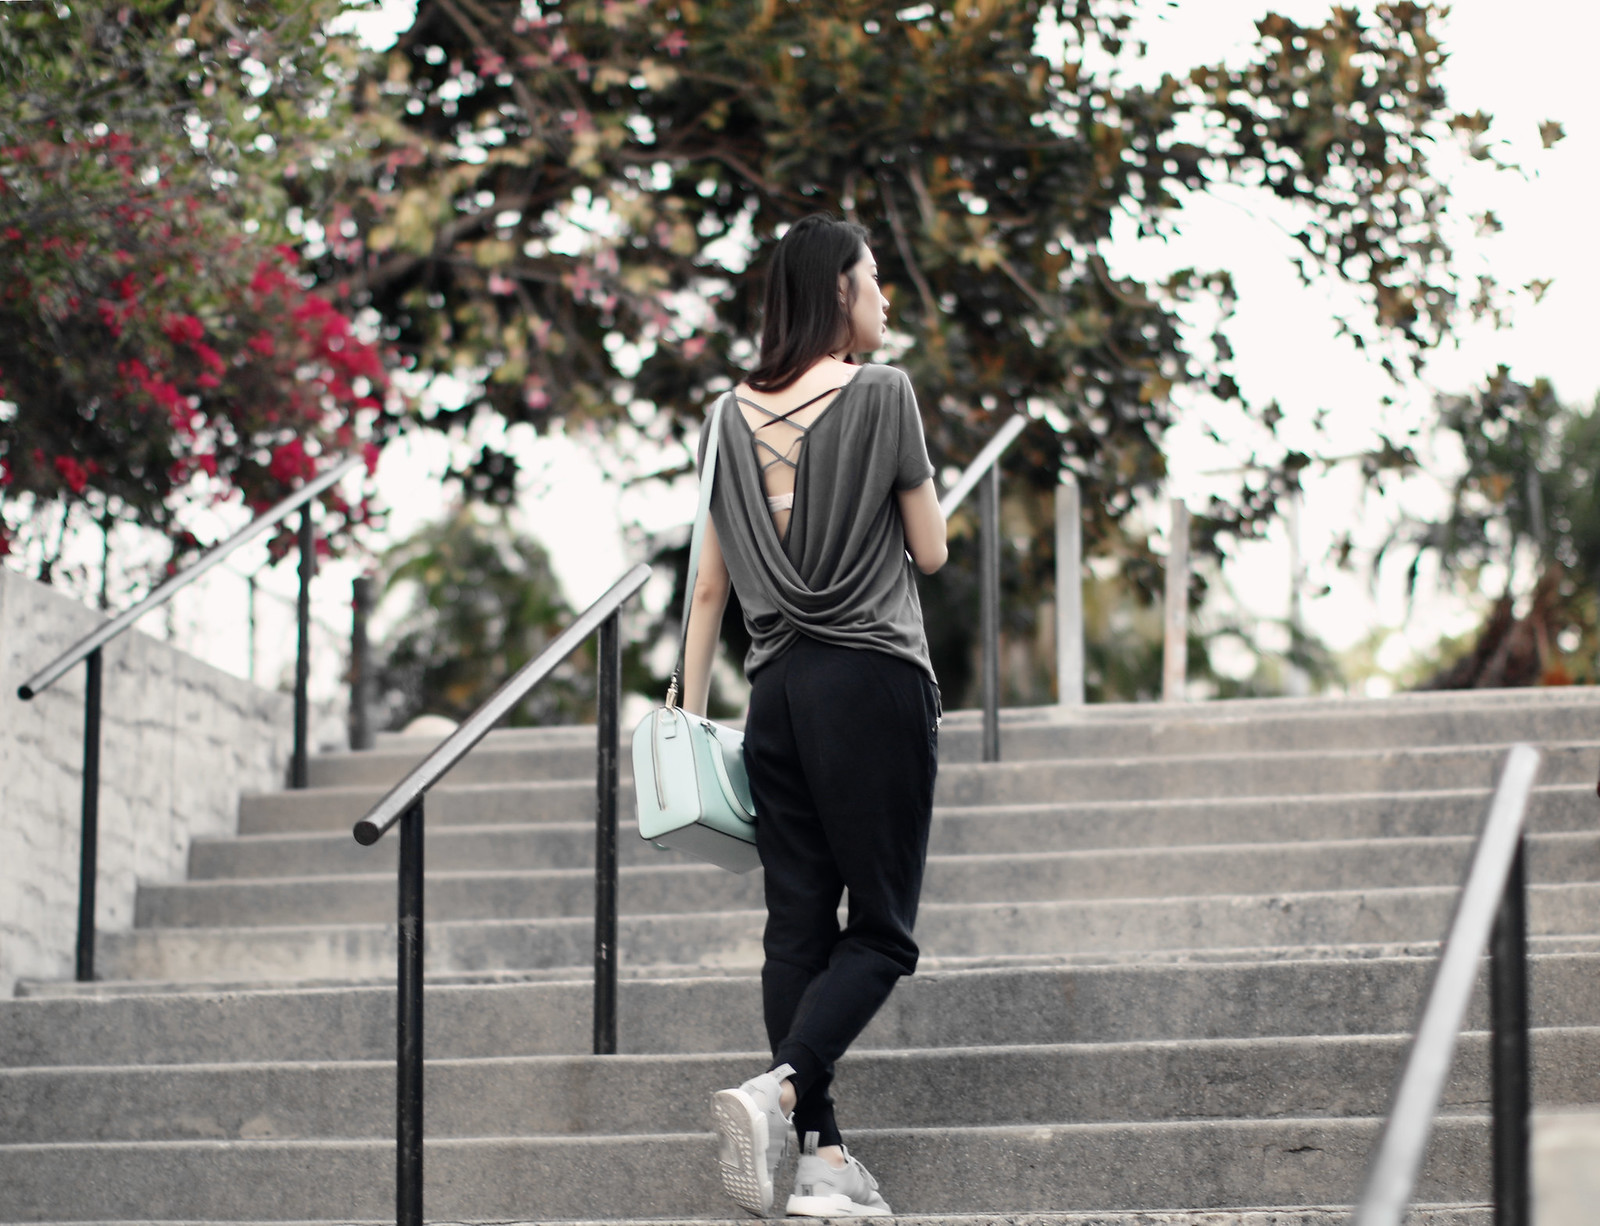 1243-clothestoyouuu-ootd-fashion-sportychic-athleisure-criss-cross-draped-back-tee-abercrombie-hollister